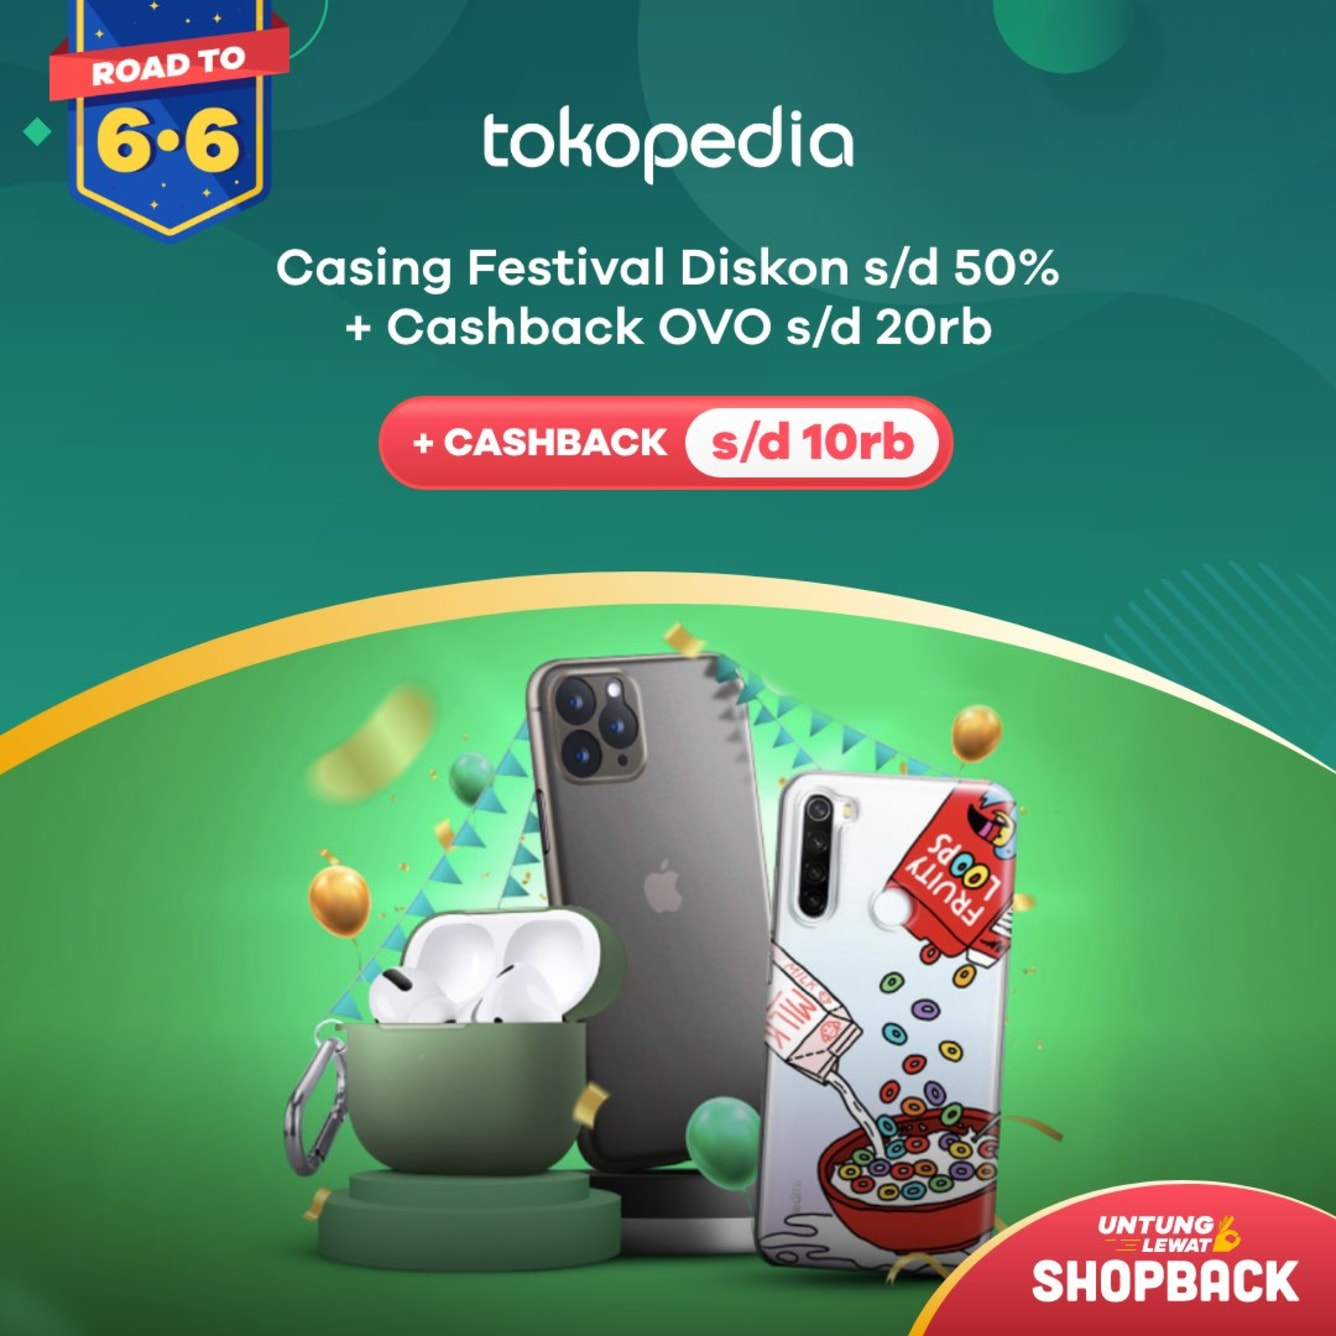 Week 23 - Promo Tokopedia